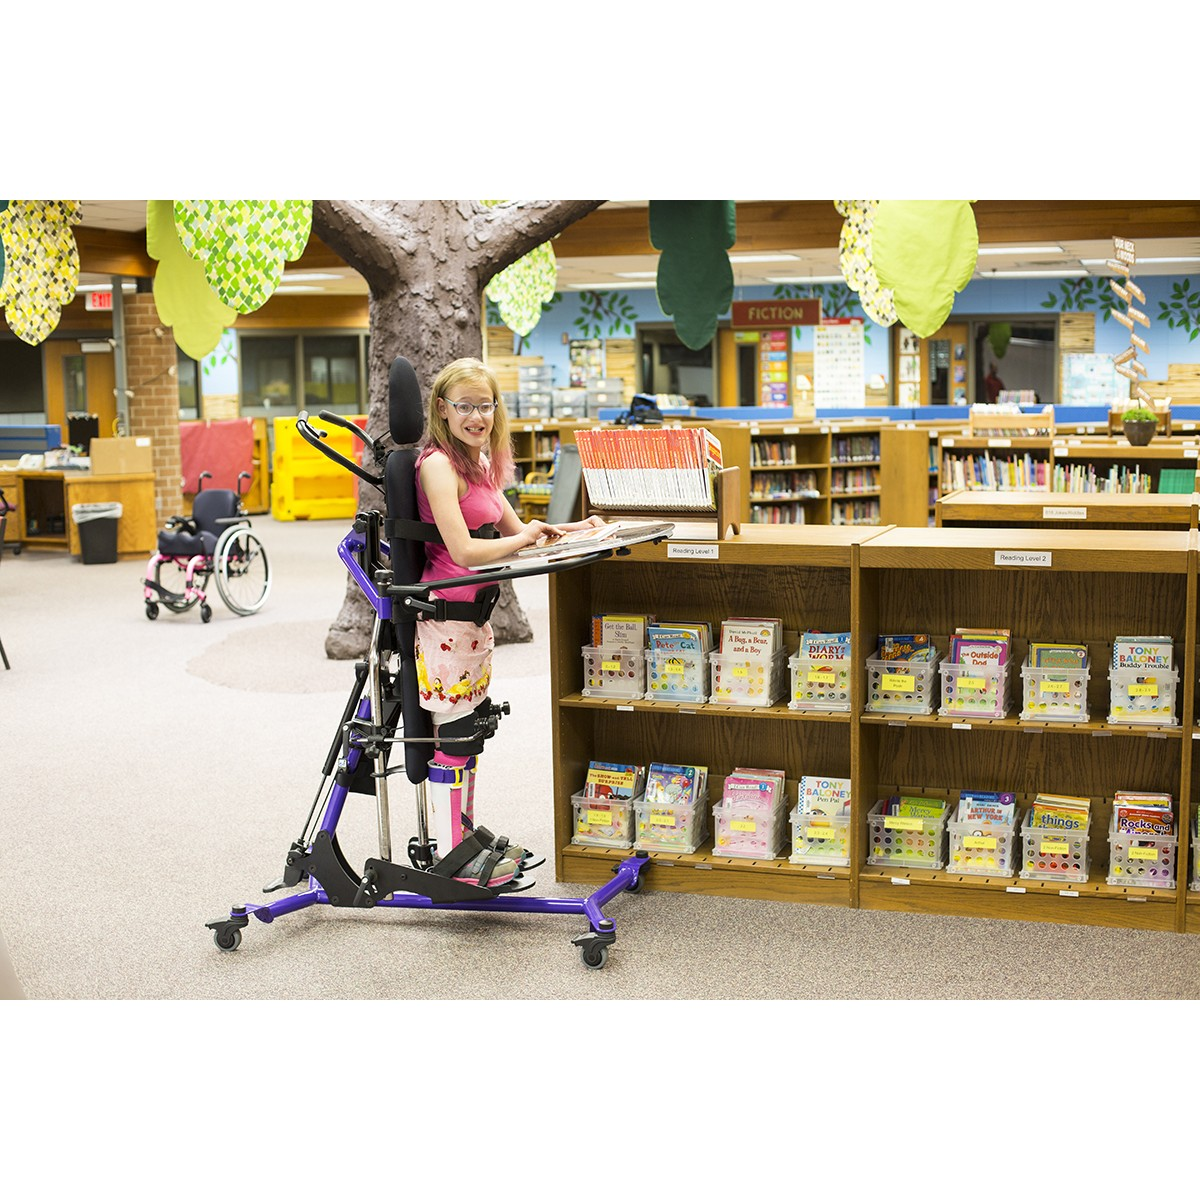 Girl standing in a EasyStand Zing Supine TT Size 2 Pow'r Up Lift in a Library